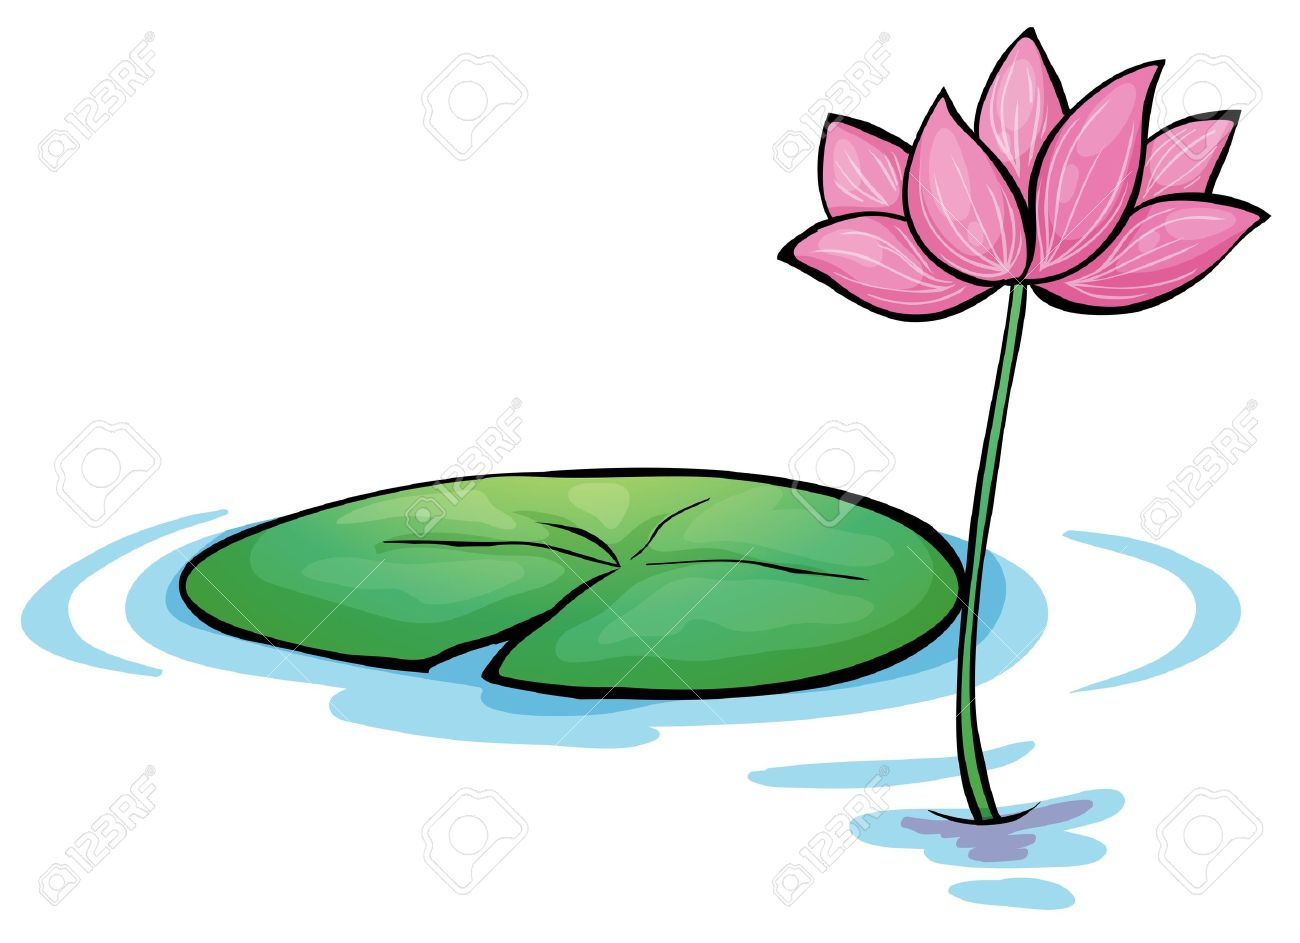 illustration of a waterlily flower on a white background royalty rh 123rf com water lily clipart free water lily clip art free